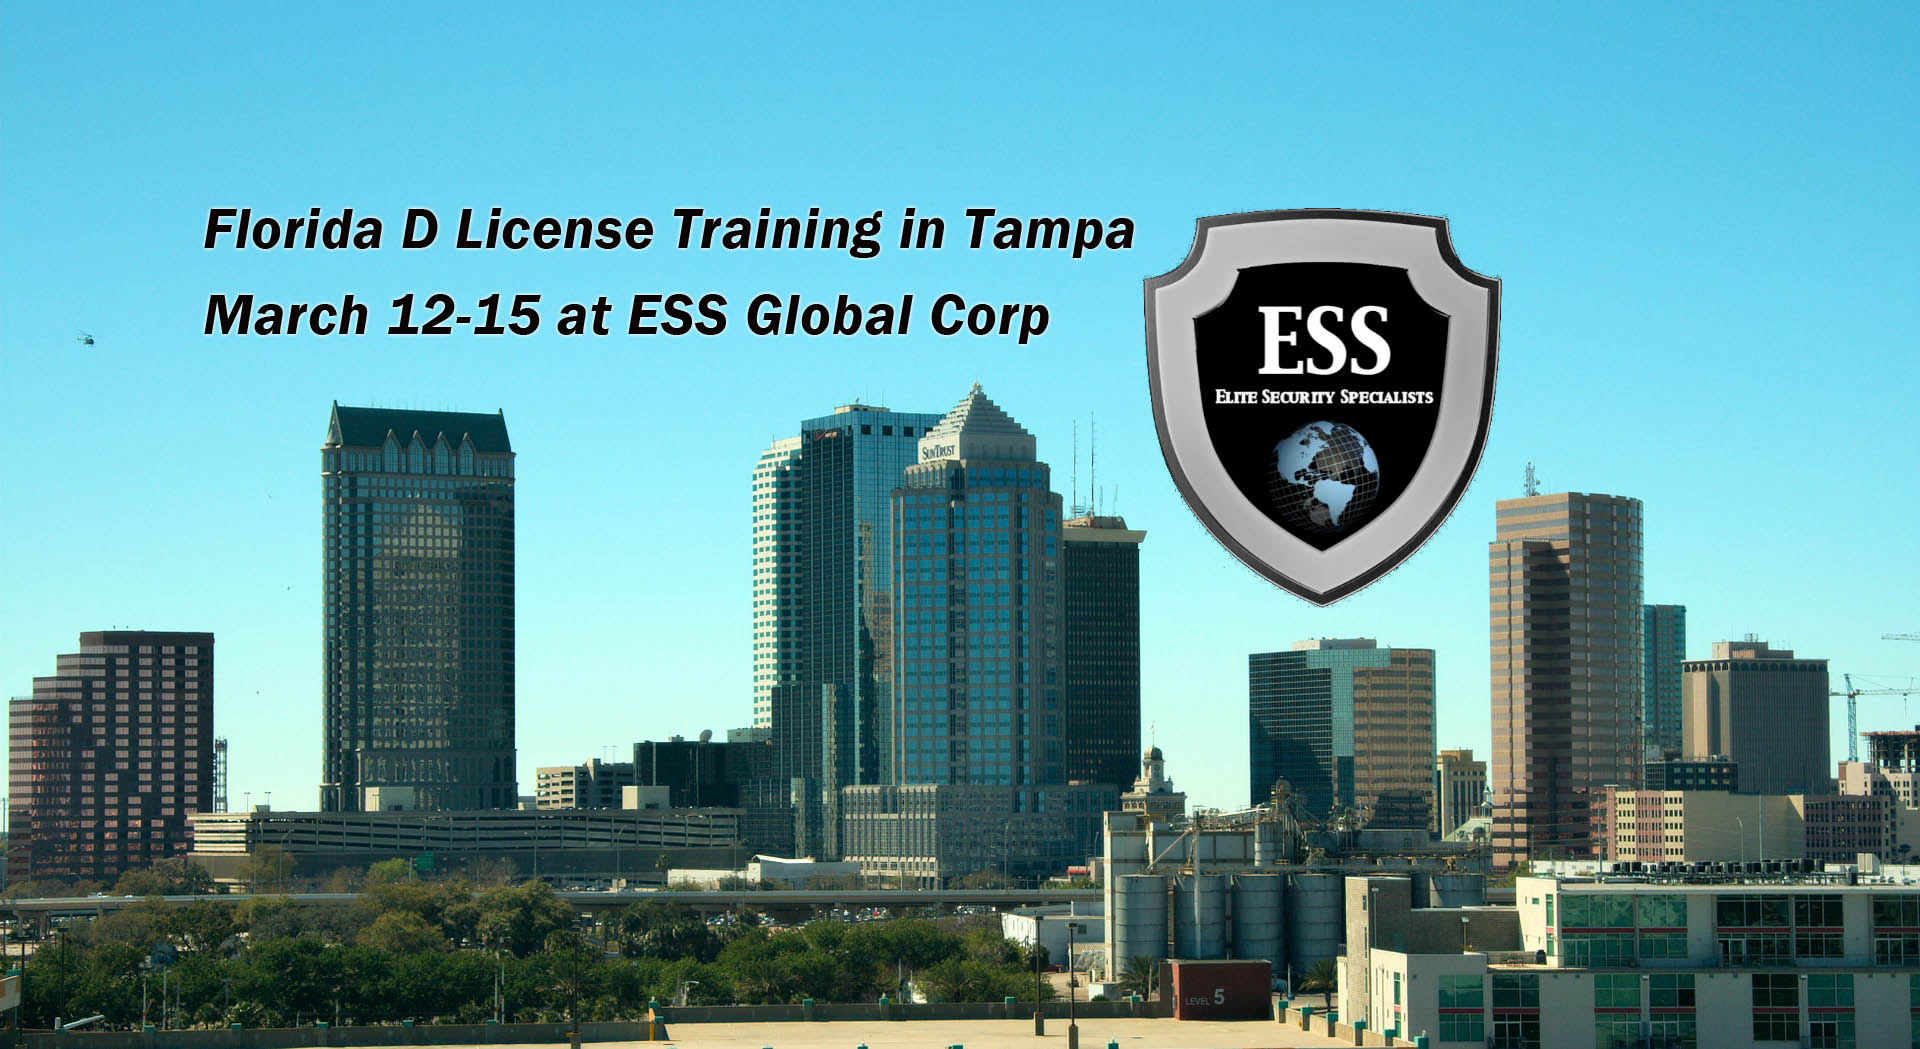 Florida D Security Class in Tampa March 12-15 at ESS Global Corp